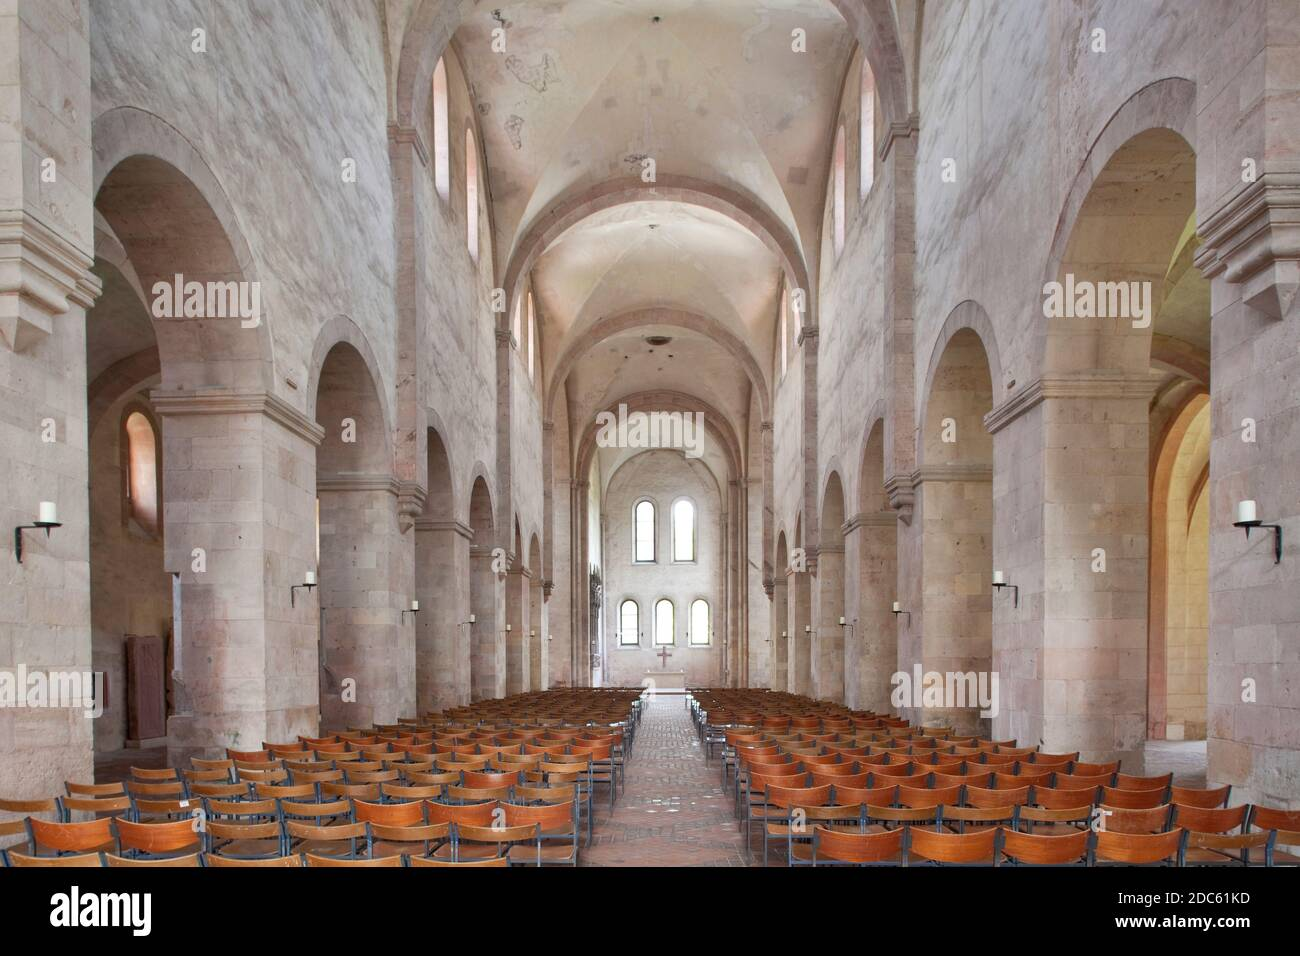 geography/travel, Germany, Hesse, Eltville at Rhine, basilica of monastery Eberbach, Eltville at Rhine, Additional-Rights-Clearance-Info-Not-Available Stock Photo